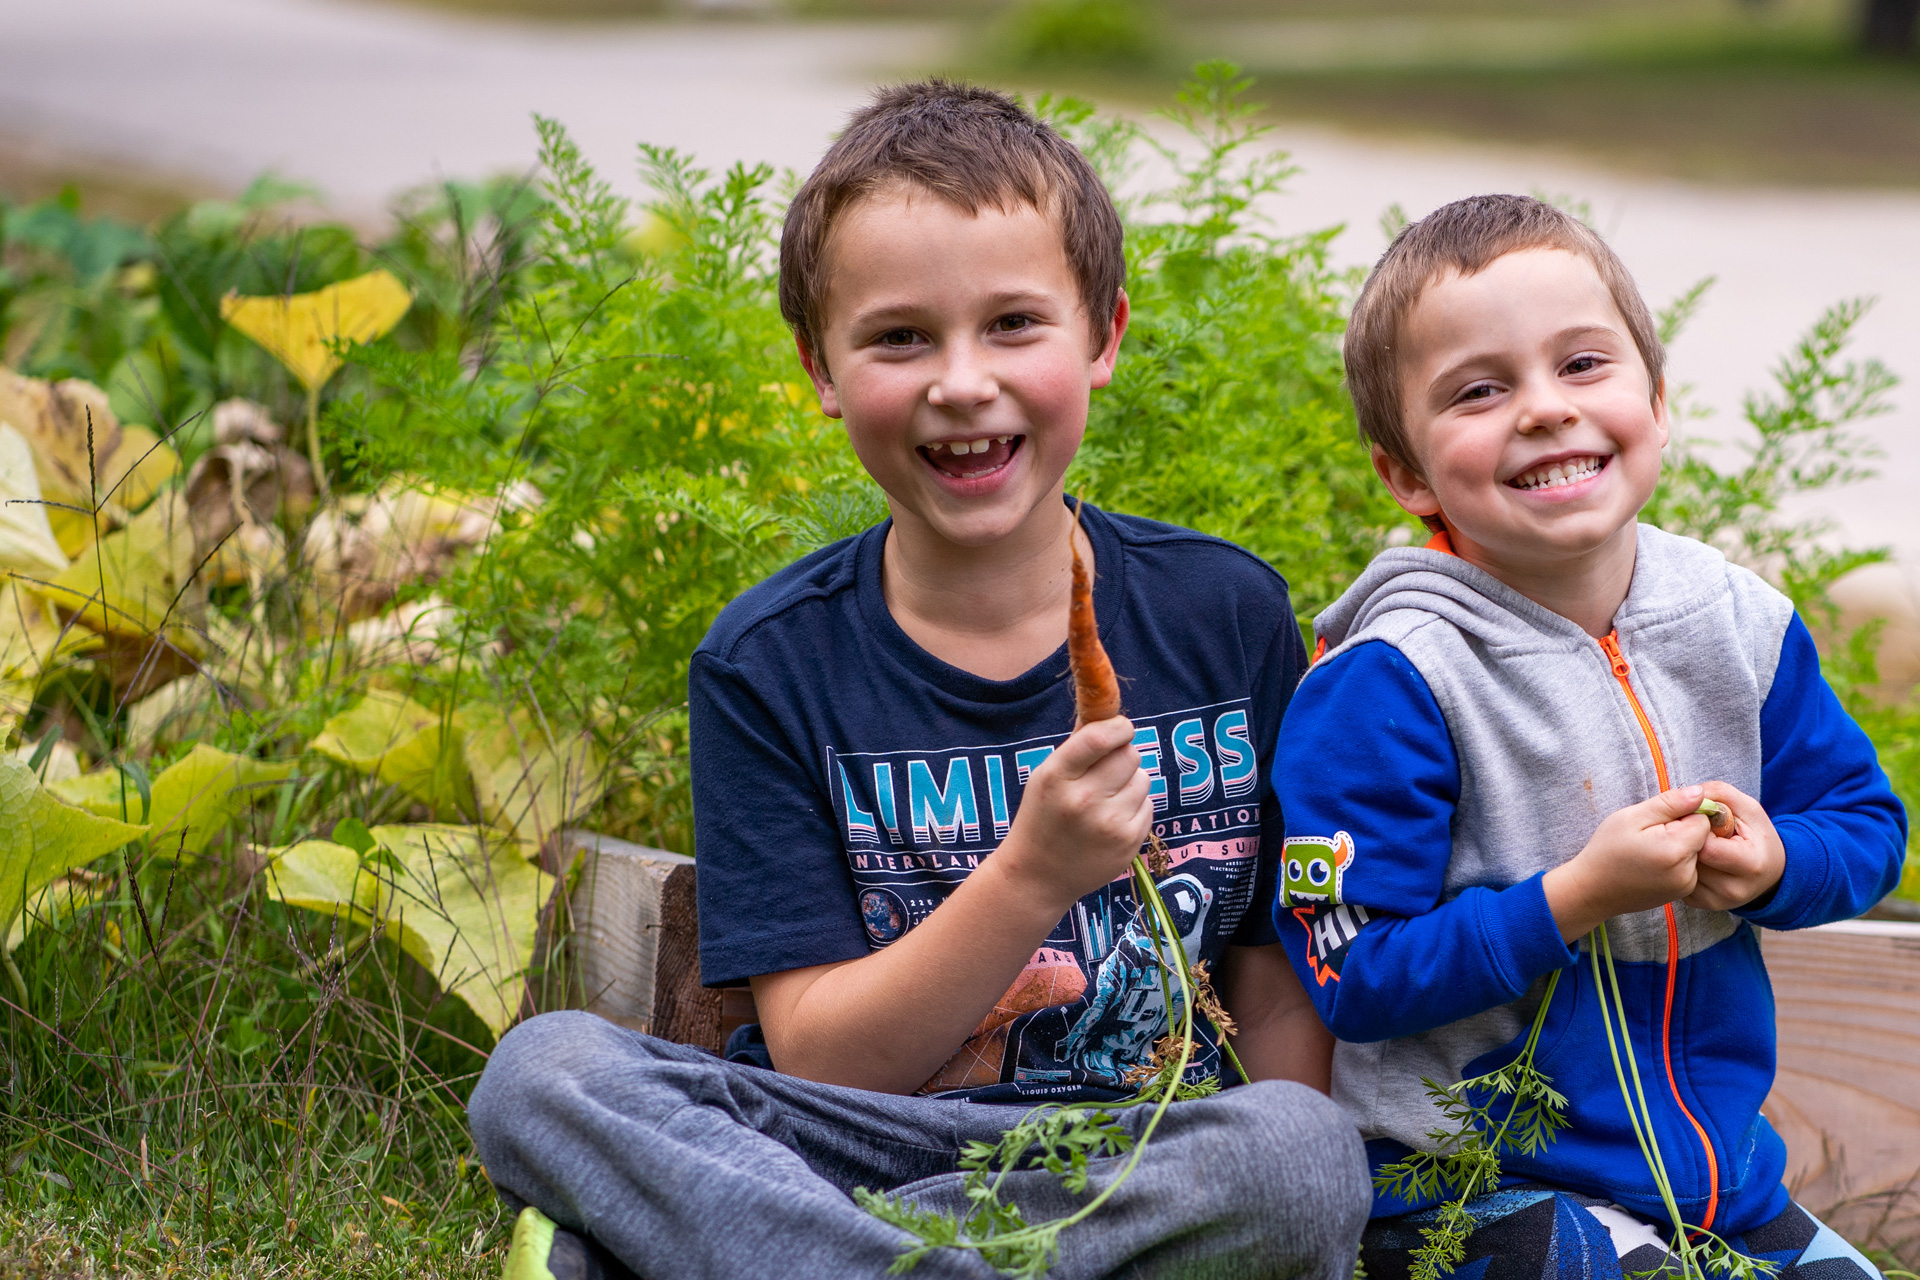 Two boys pull carrots from the ground